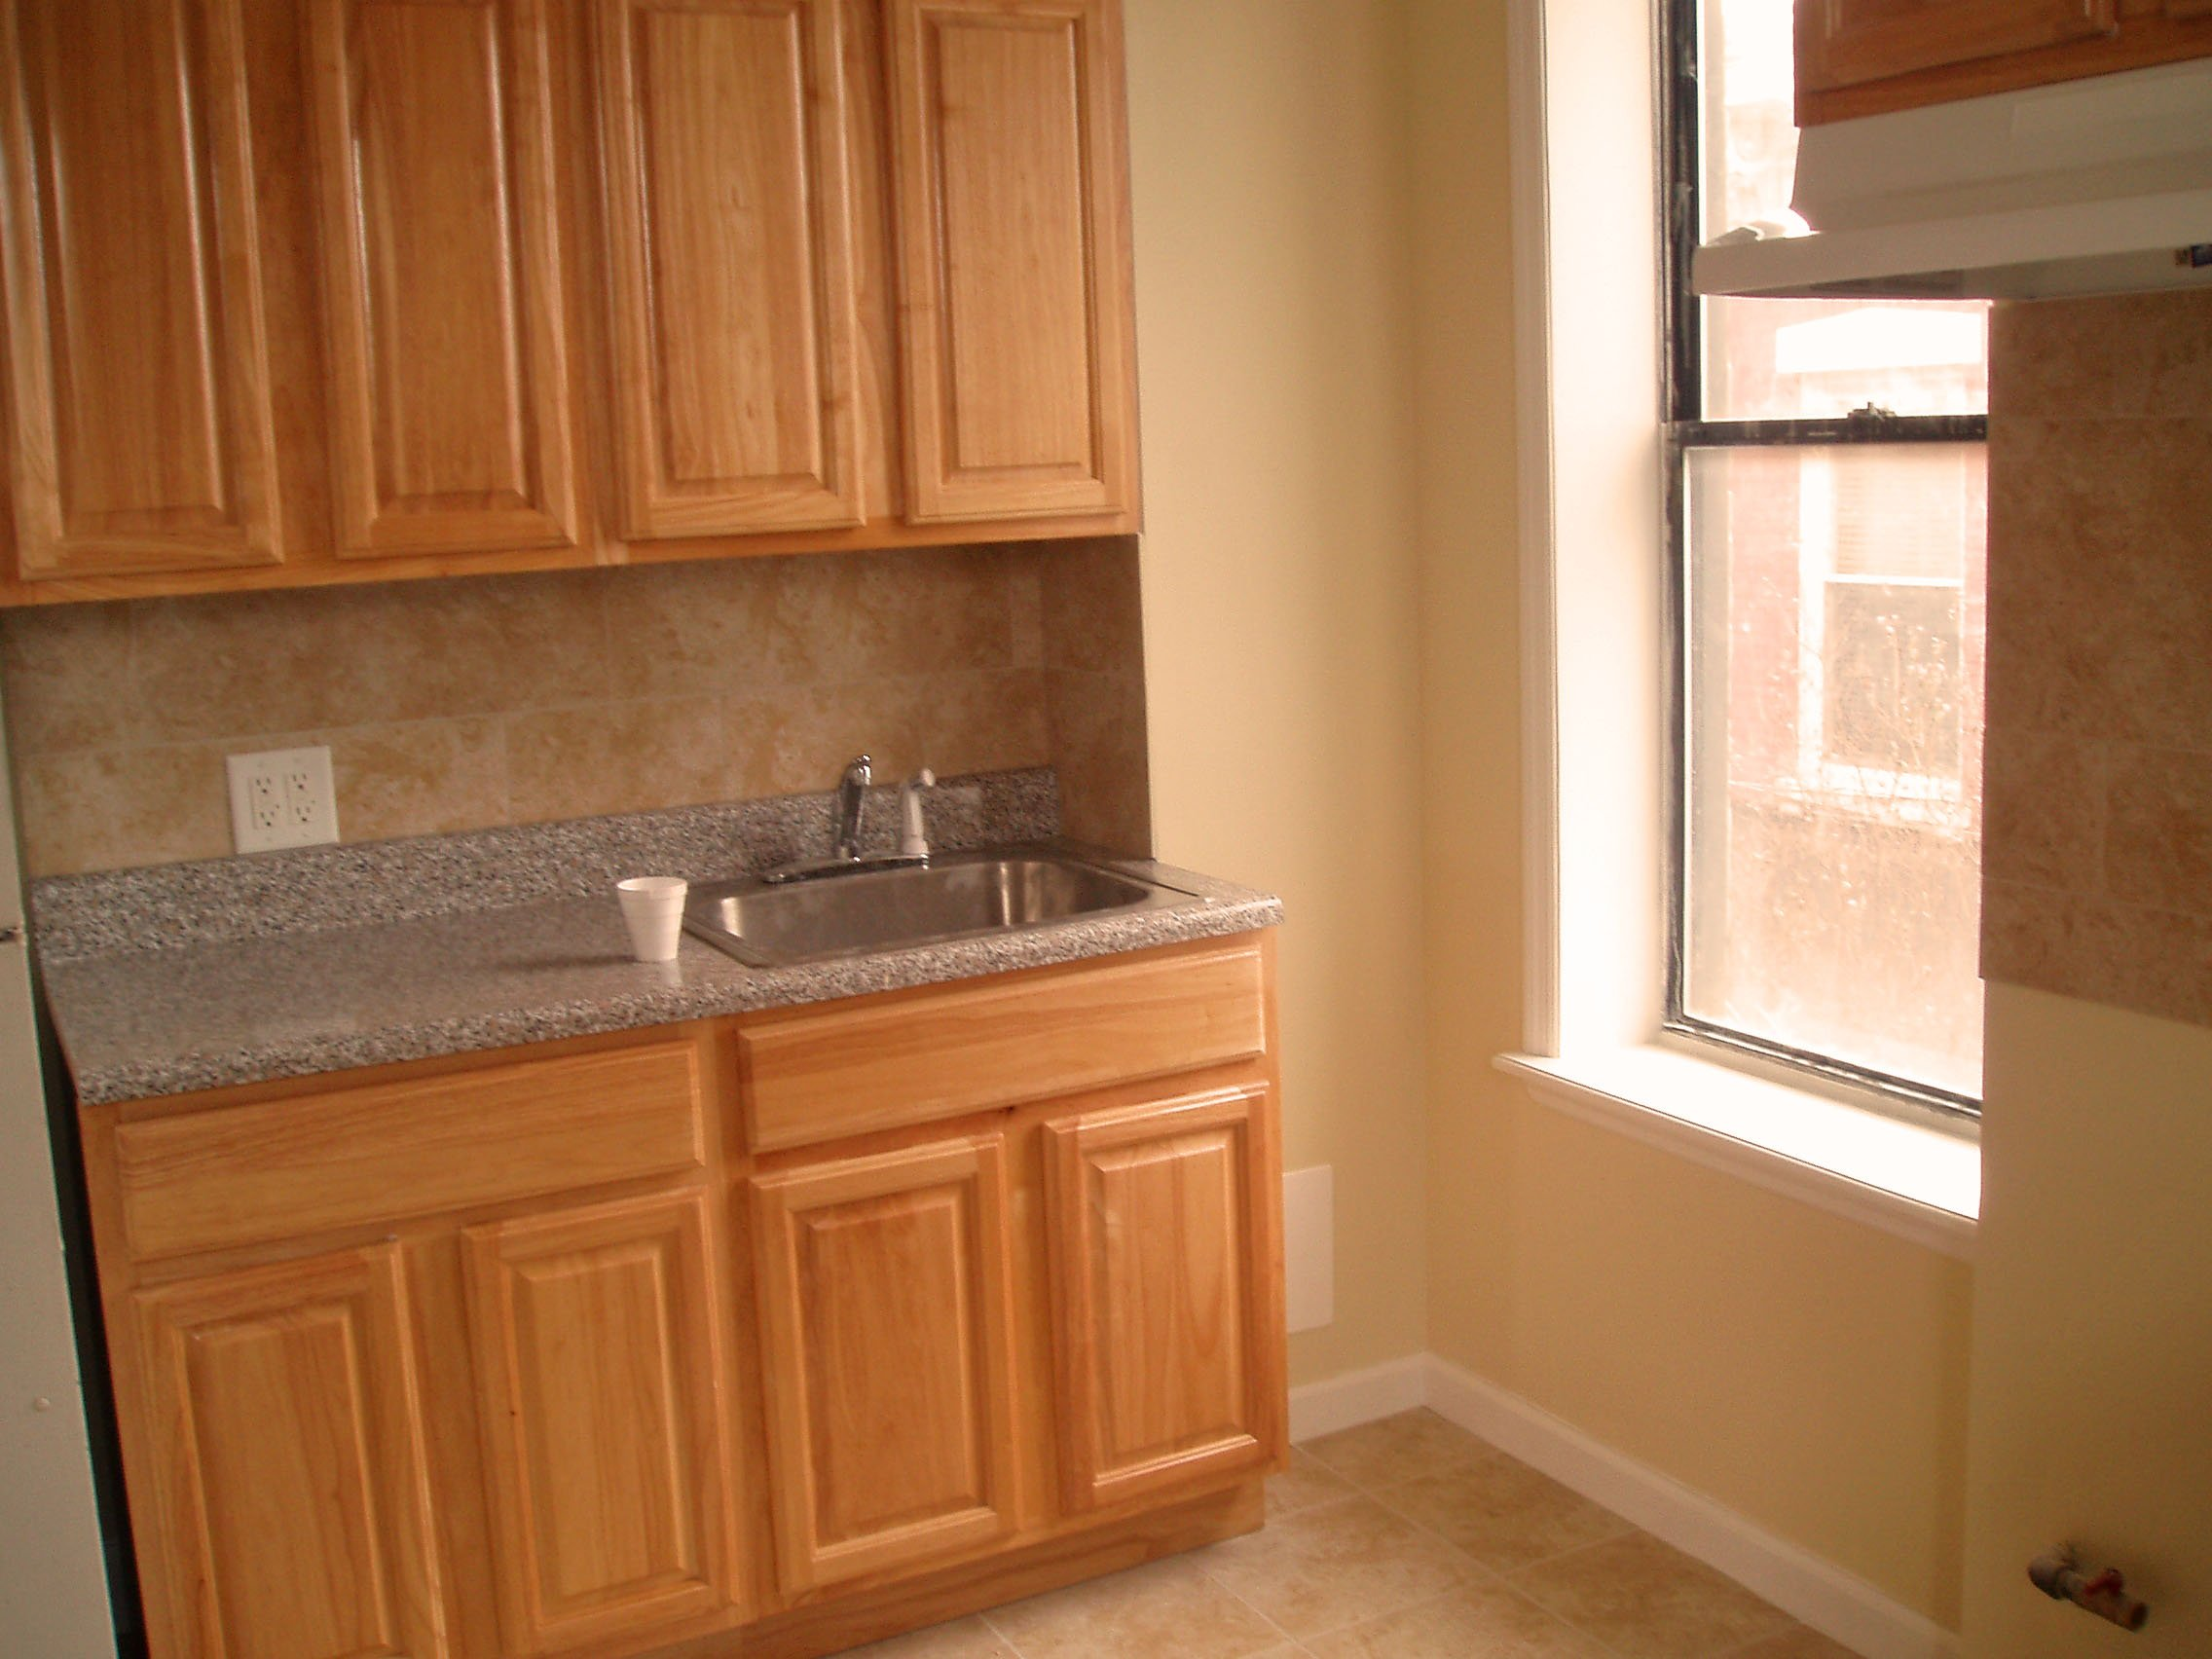 2 Br Apt For Rent Crg3003 C Corley Realty Group